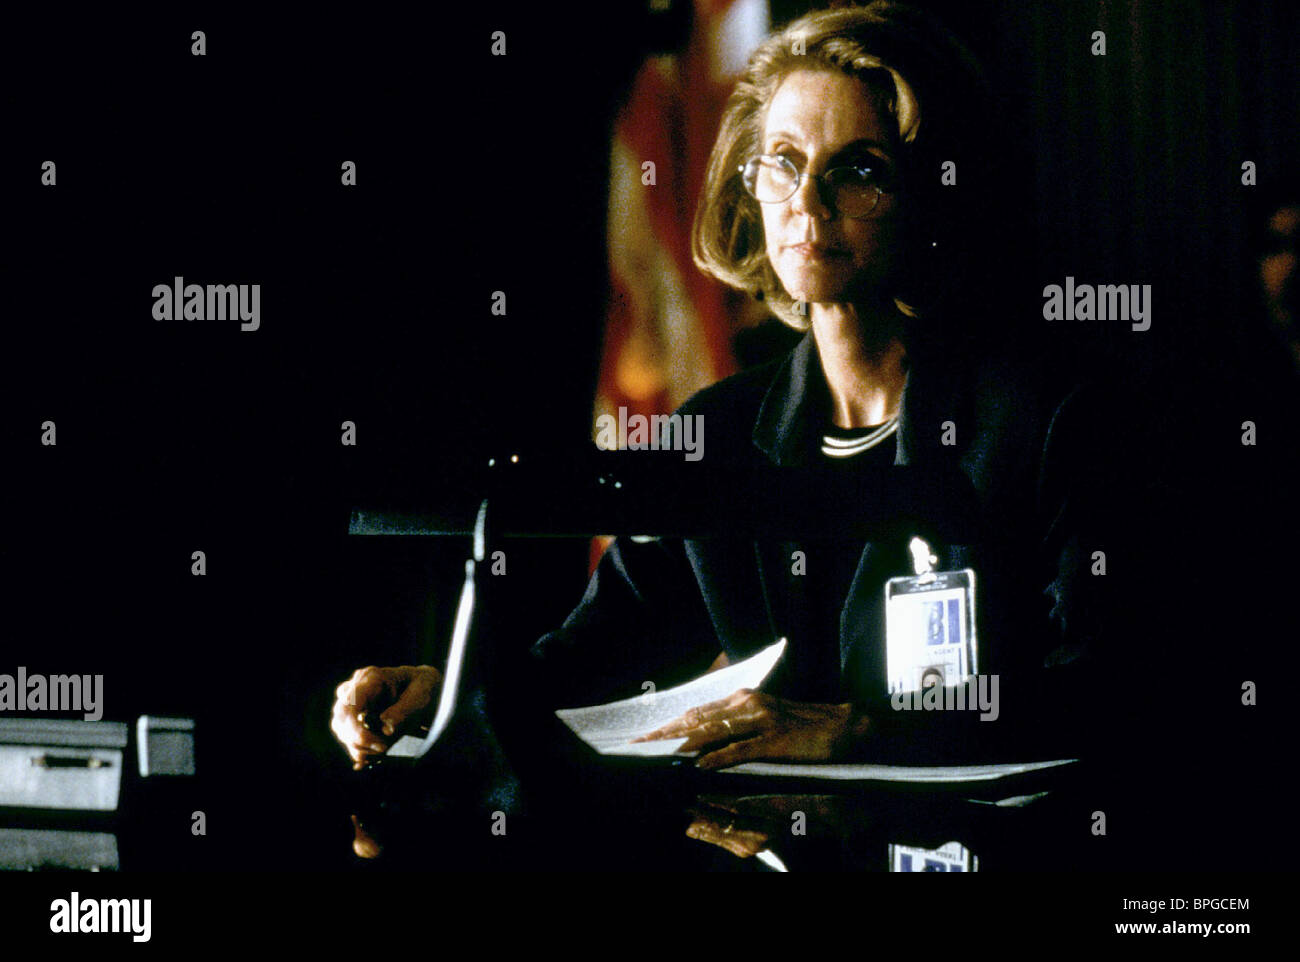 BLYTHE DANNER THE X-FILES: THE MOVIE (1998) - Stock Image